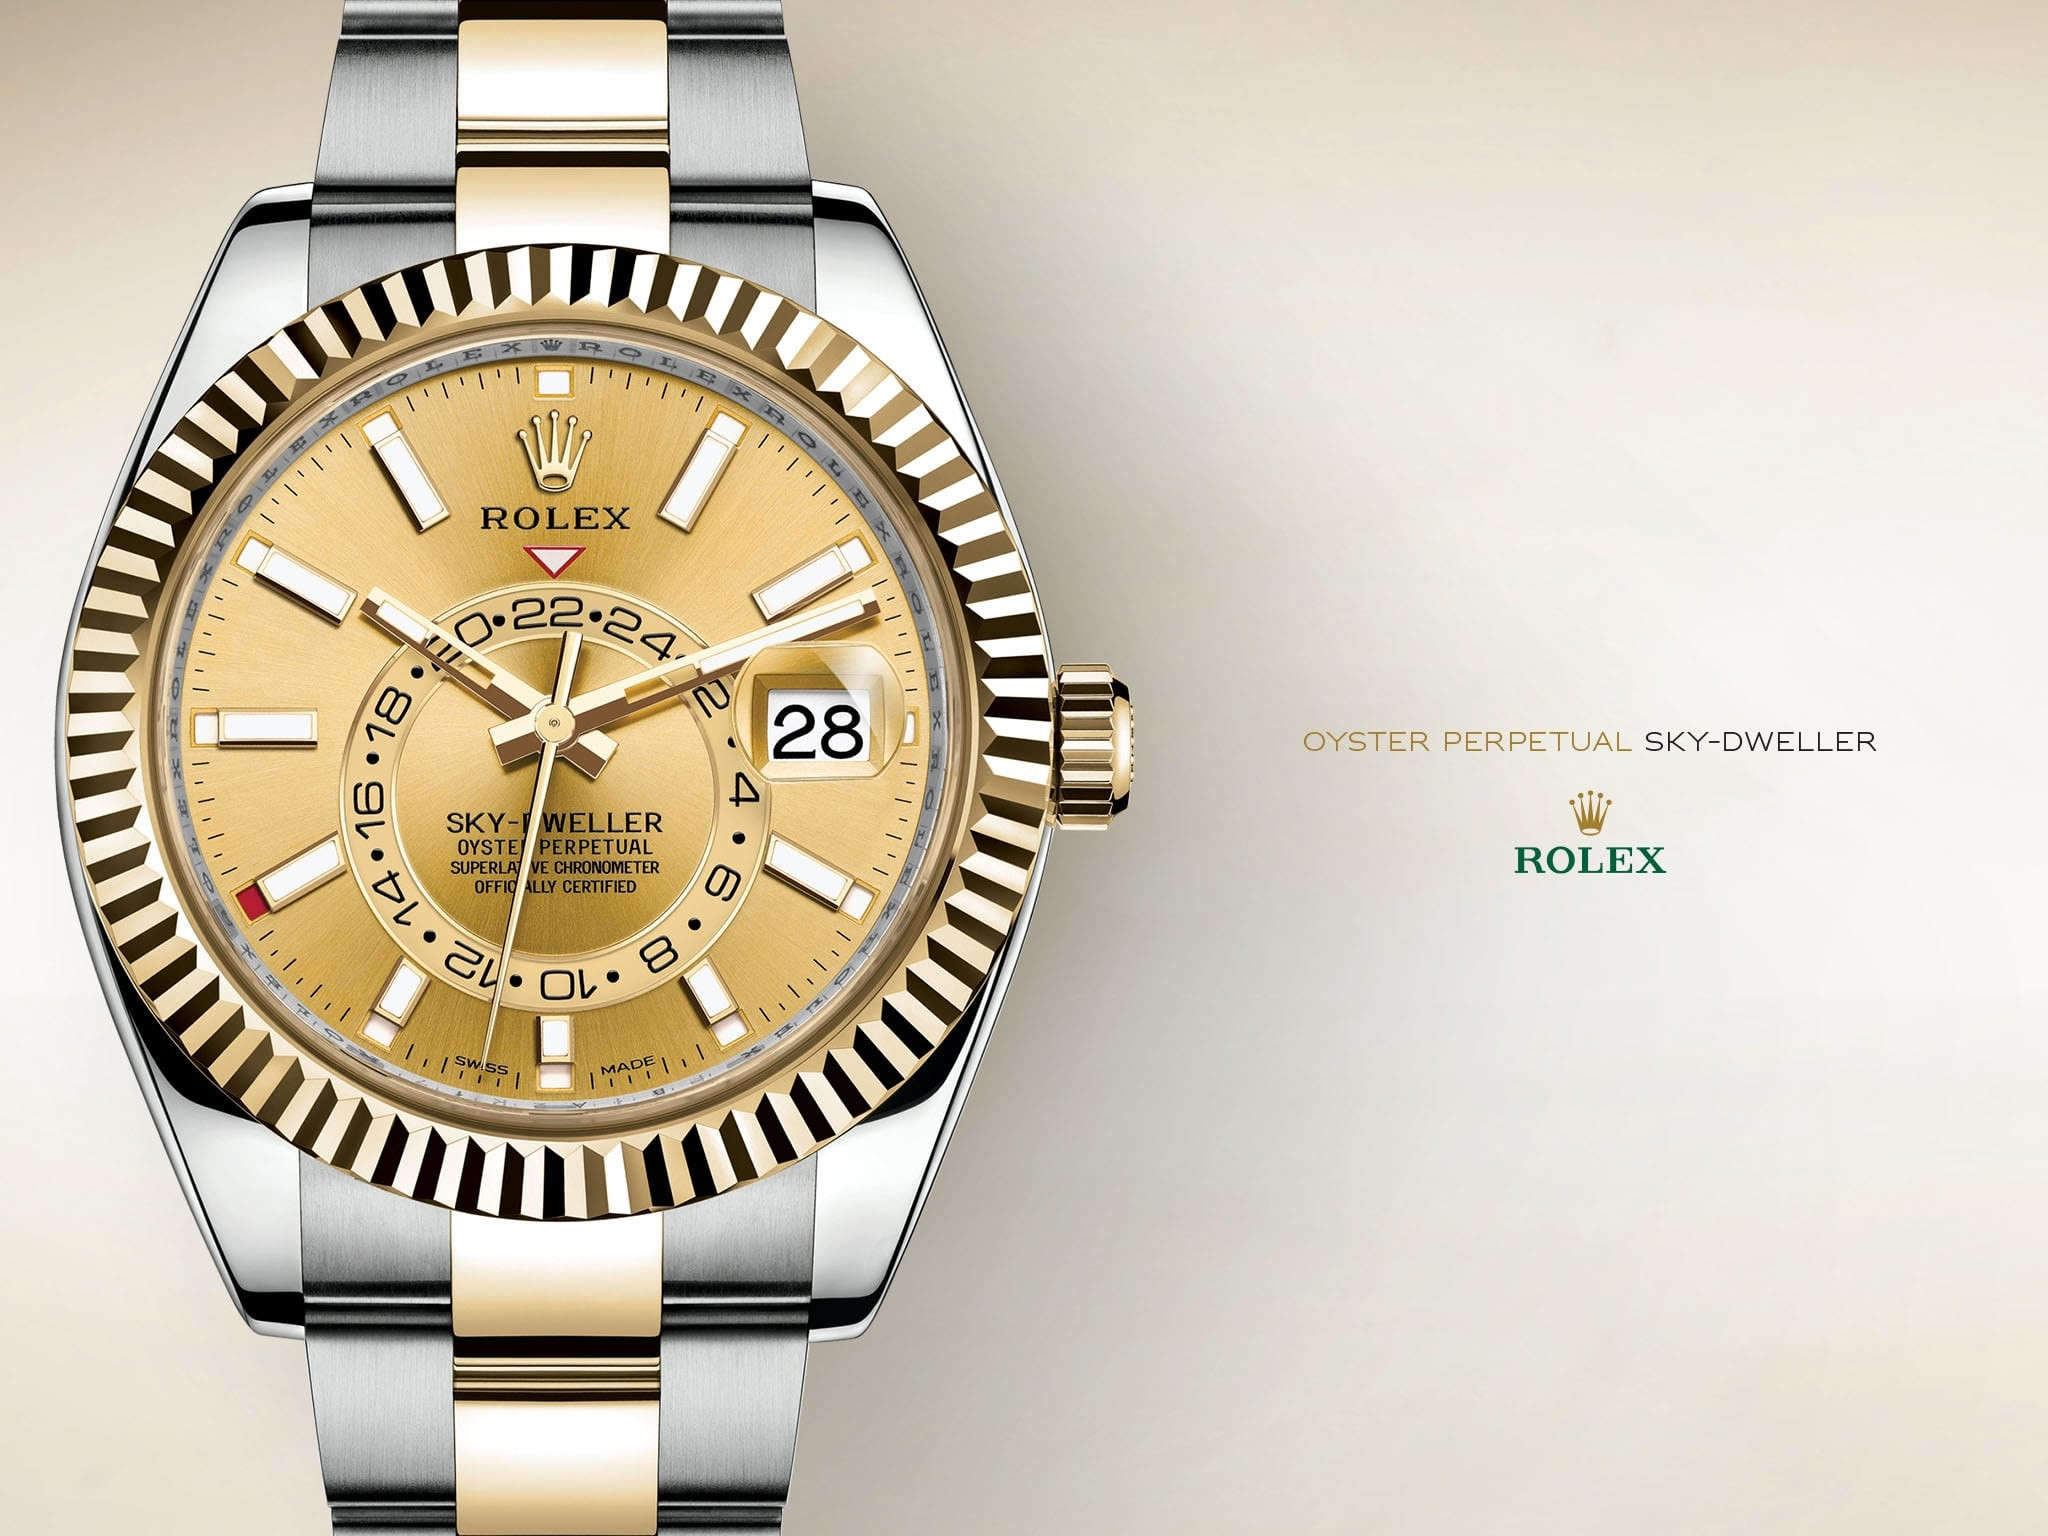 Rolex Wallpaper            2048x1536 Rolex wallpapers      Download      1280x768